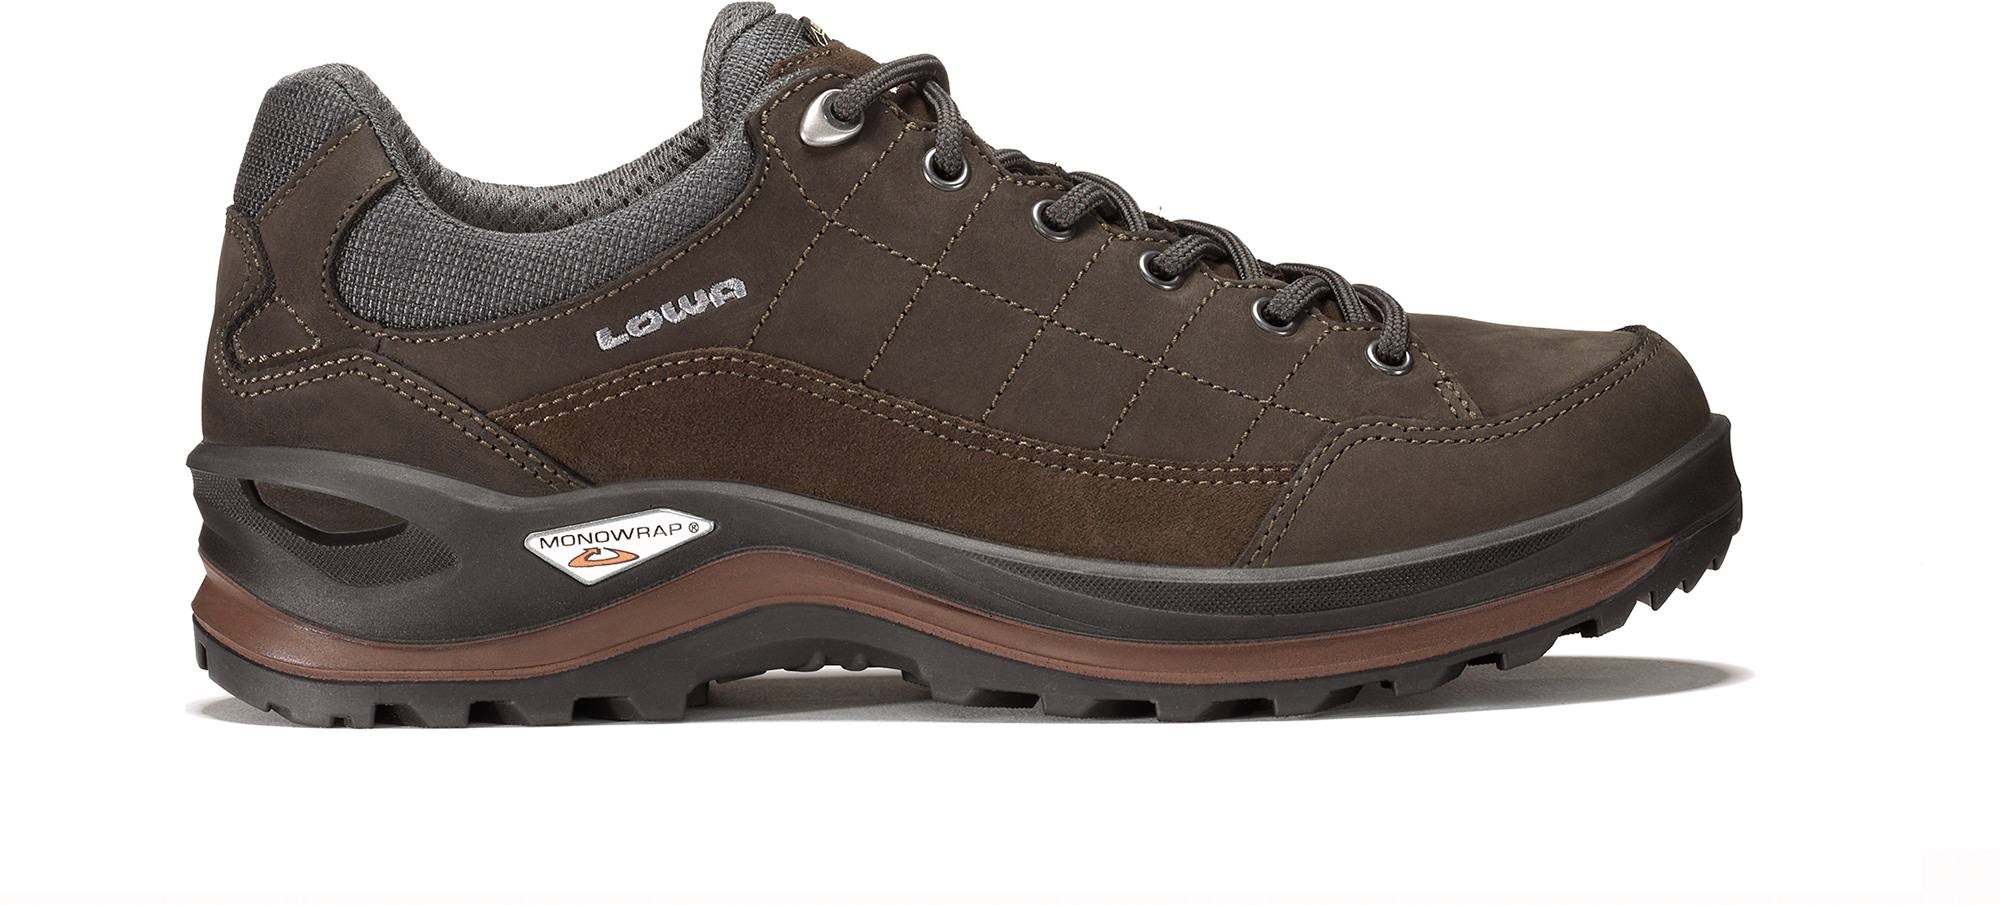 d154481dba0 Lowa Renegade III GTX Low | Scandinavian Outdoor